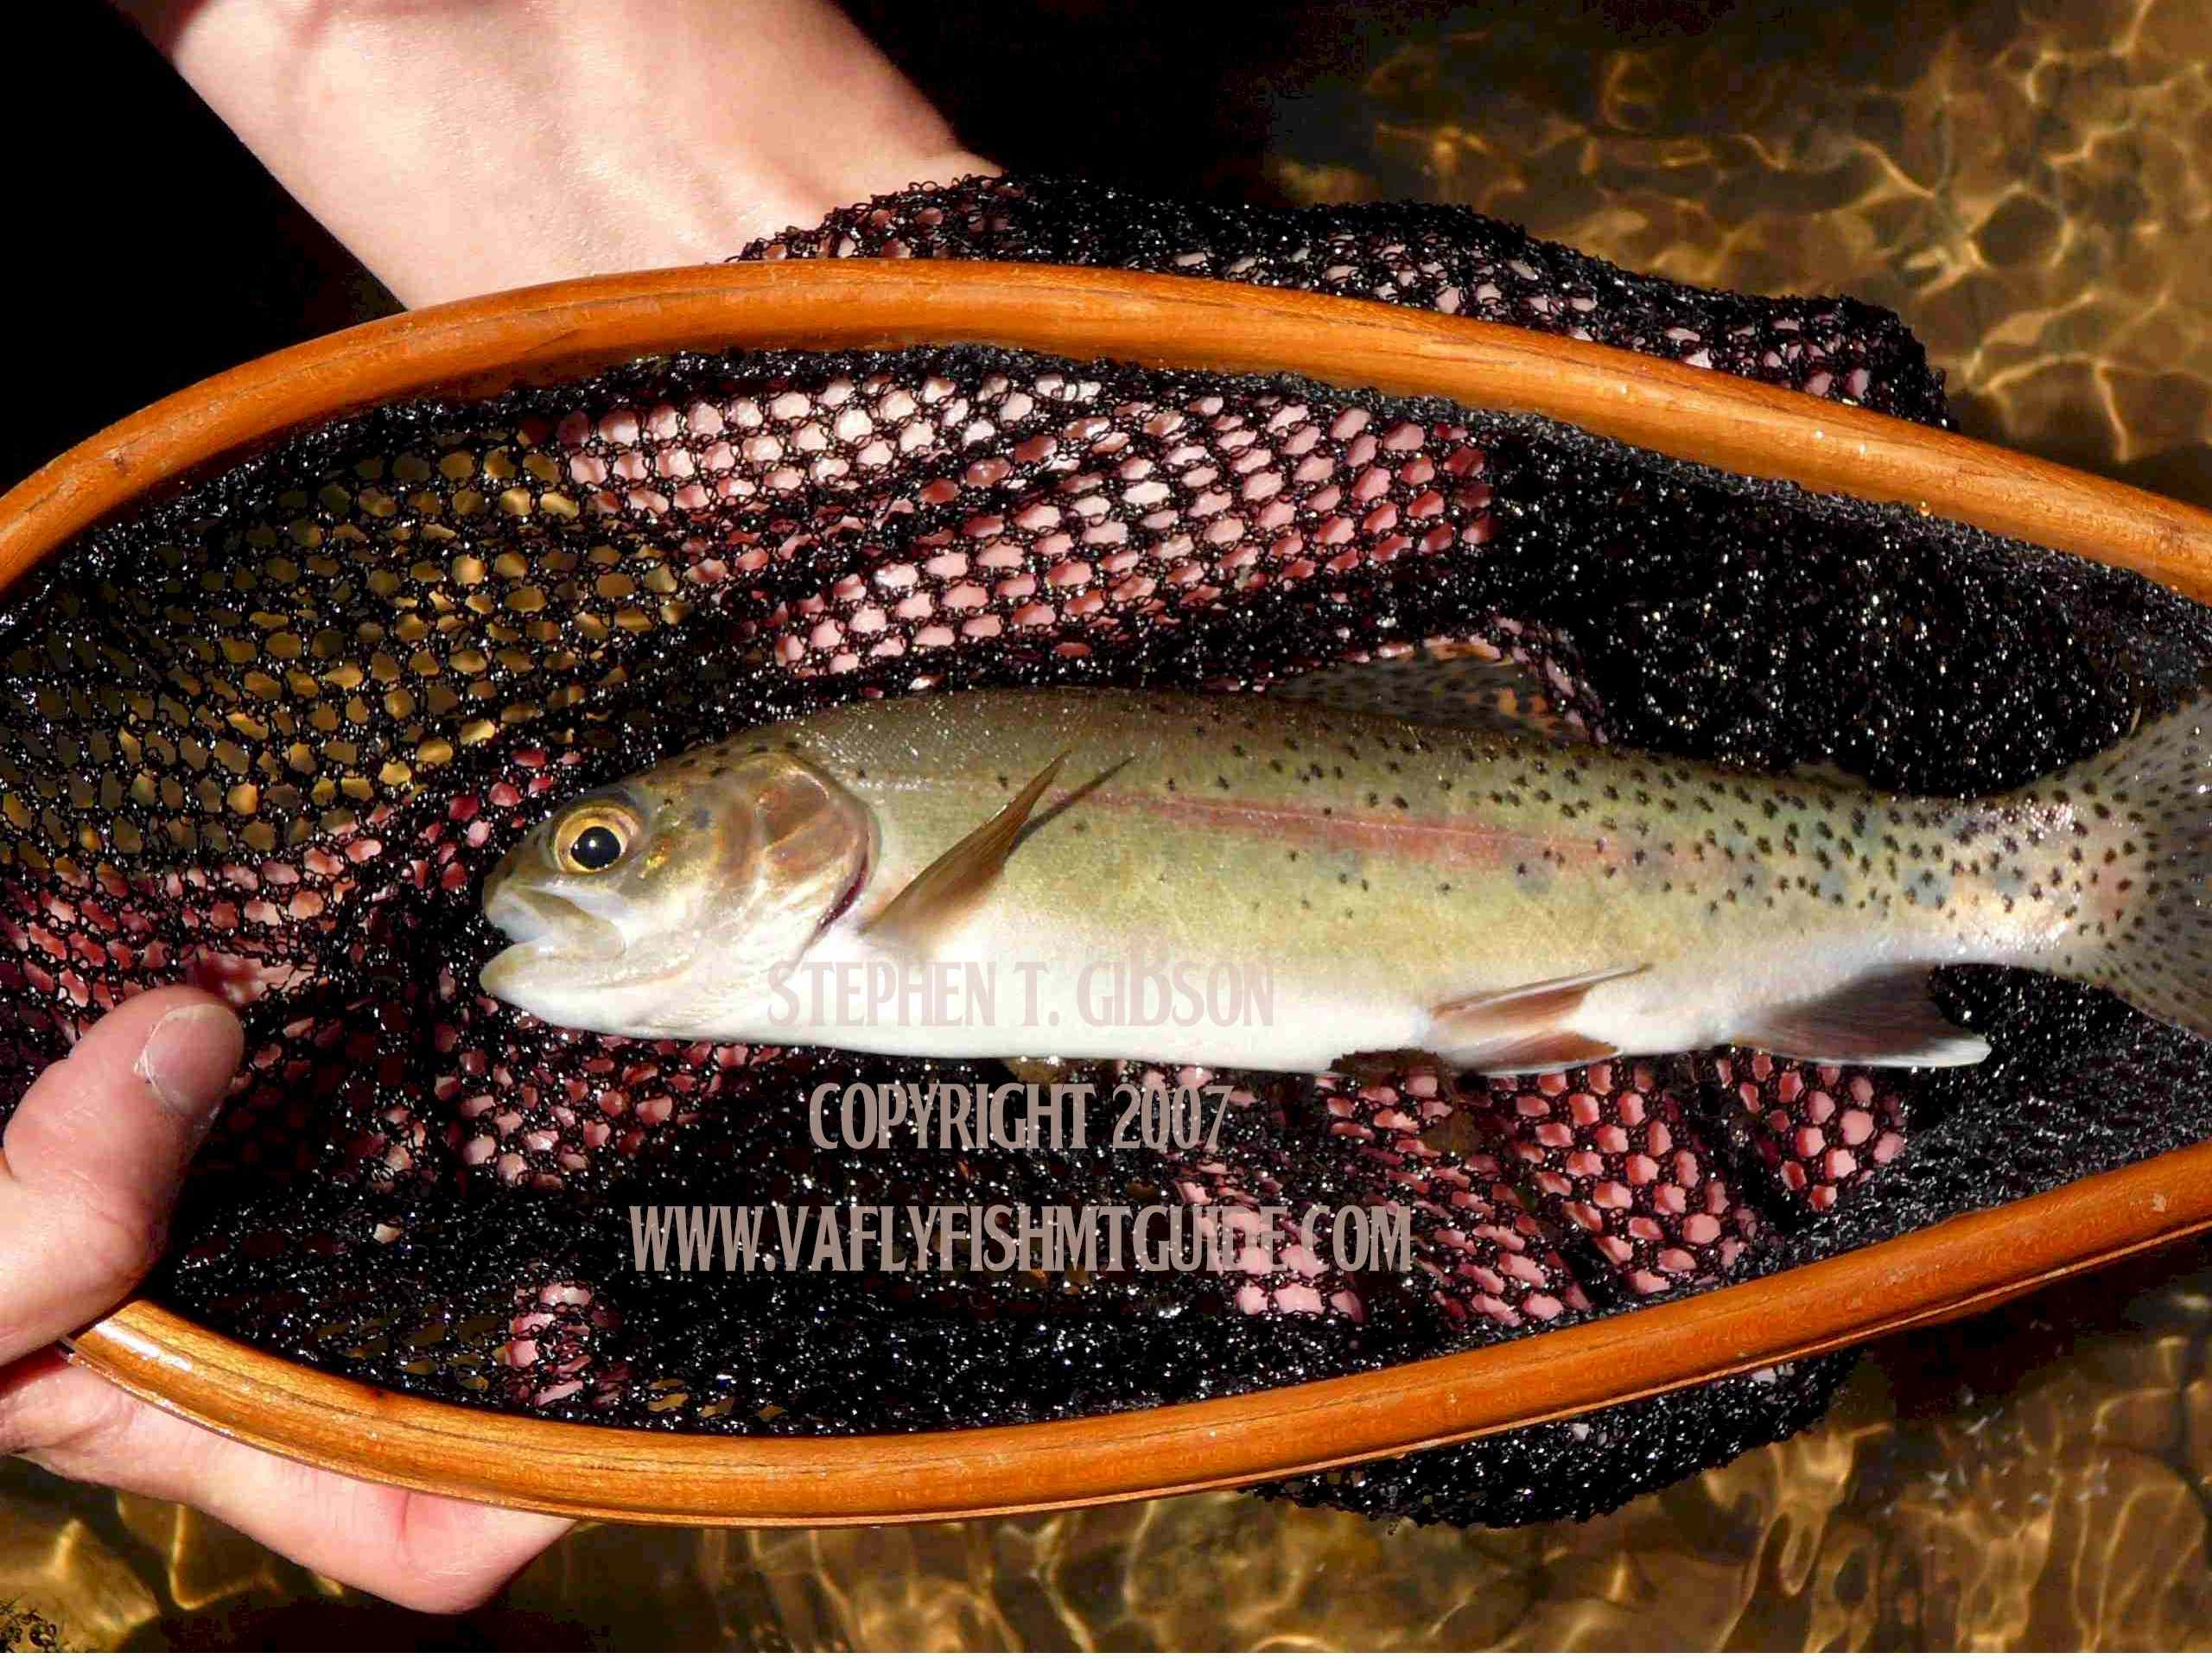 Virginia Fly Fishing in the Shenandoah Valley. Virginia fly fishing, Va Fly Fishing, Fly Fish Virginia, Virginia fly fishing with Wild Mountain Trout Fly Fishing.